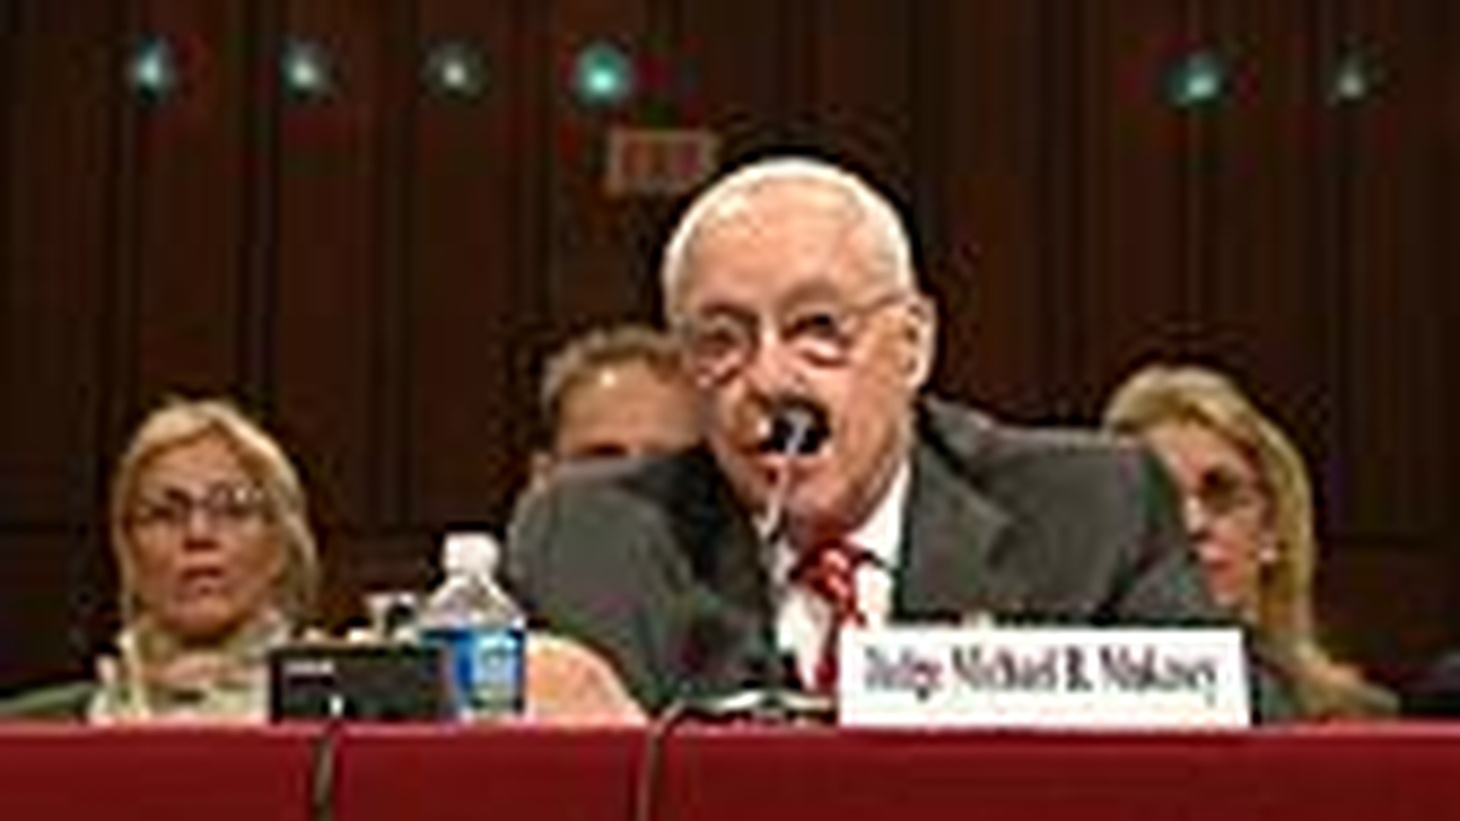 NPR News offers an hour-long news special on the Senate Judiciary Committee hearings on the nomination of Michael B. Mukasey to be Attorney General of the United States. Nina Totenberg hosts with Ron Elving, NPR's Senior Washington Editor. (This 6:30-7:30pm special pre-empts Which Way, LA?.)